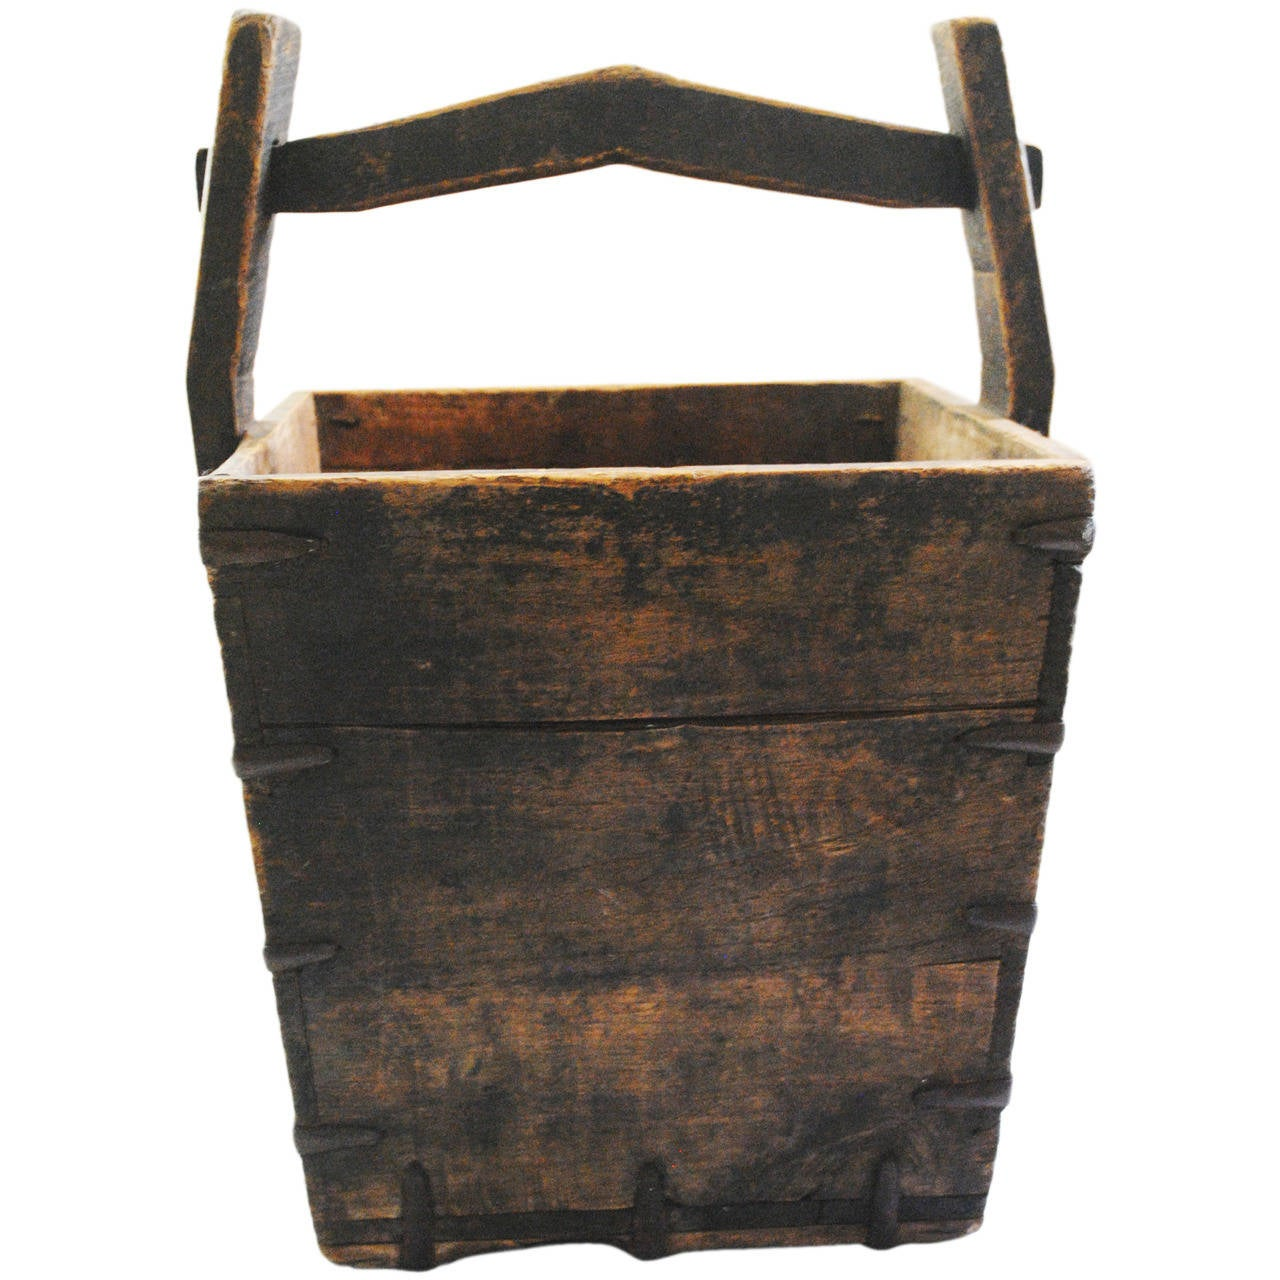 Art Baskets For Sale : Antique chinese rice basket for sale at stdibs